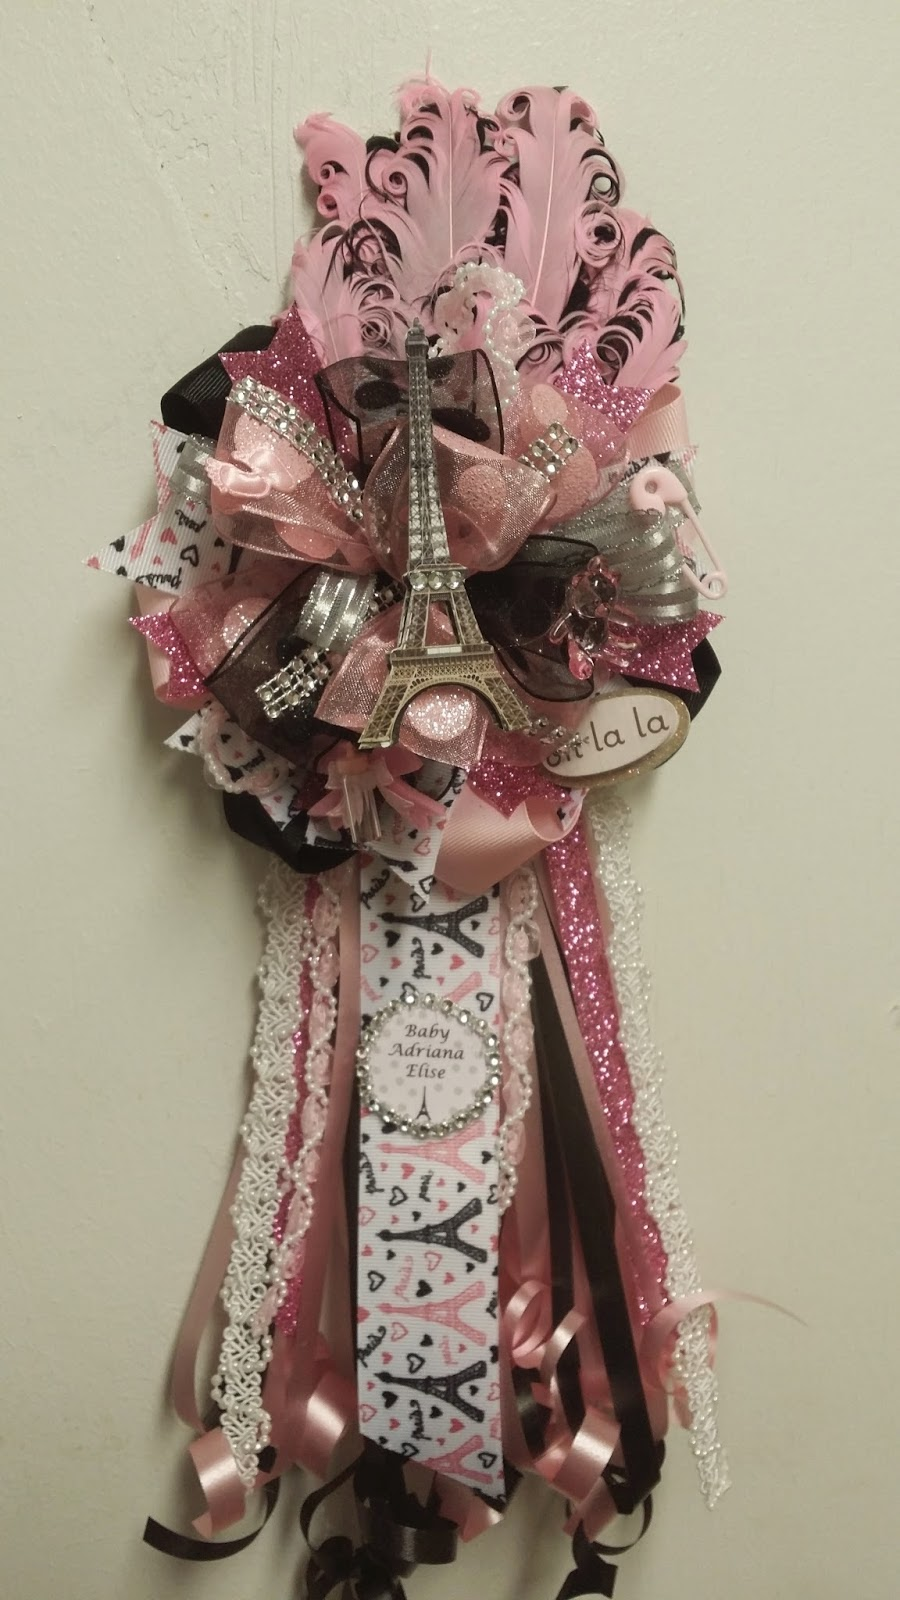 Adriana S Creations Girl Theme Baby Shower Corsages